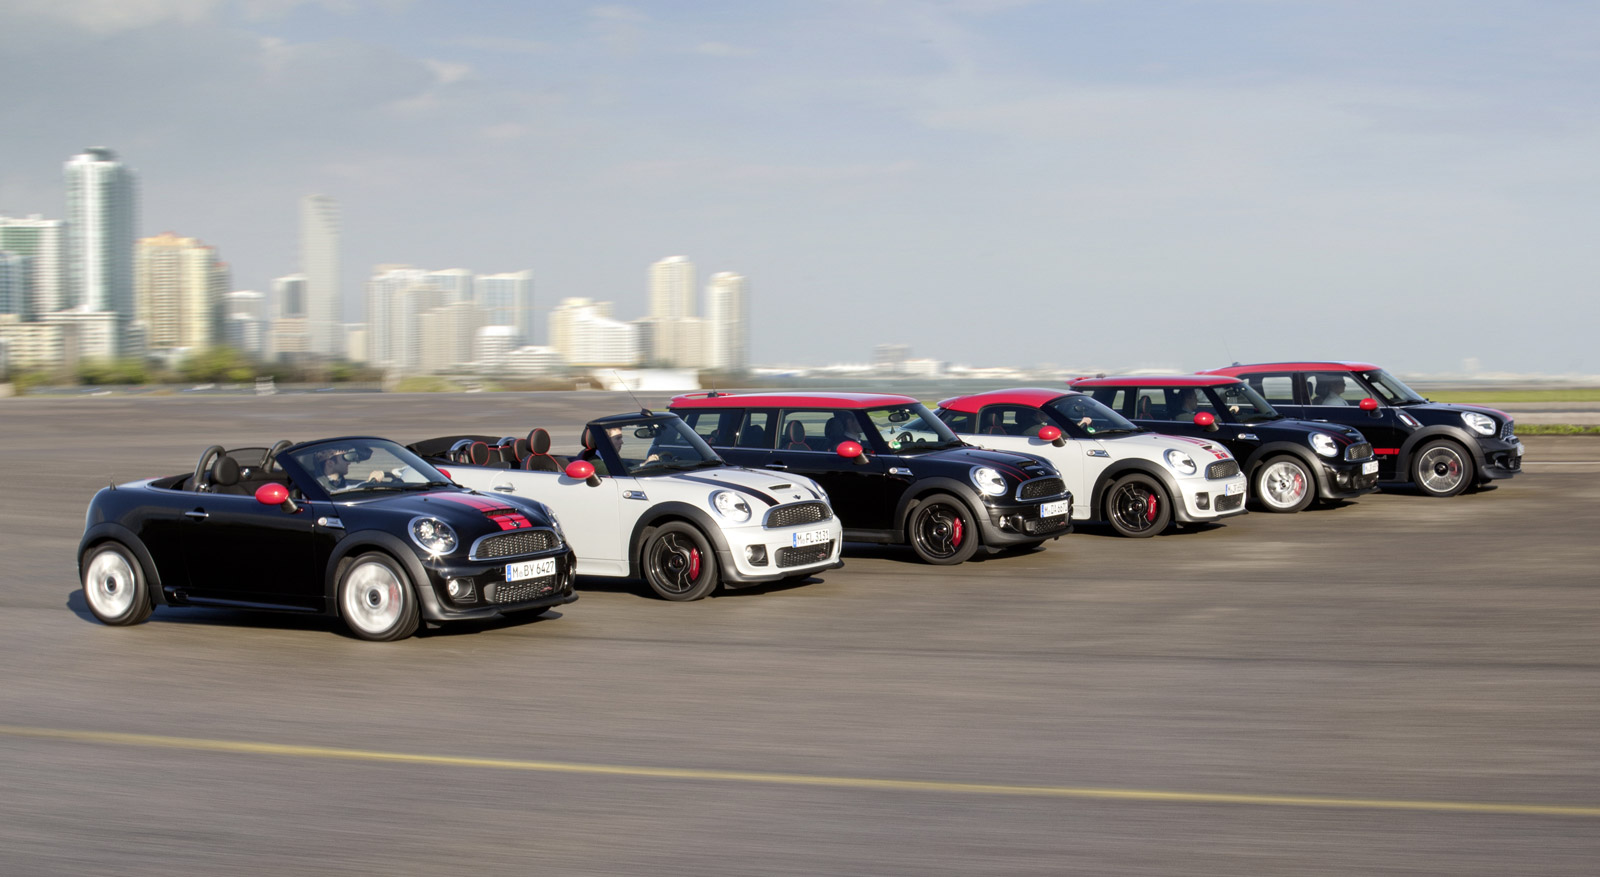 Mini S John Cooper Works Lineup Gets New Engine For 2013